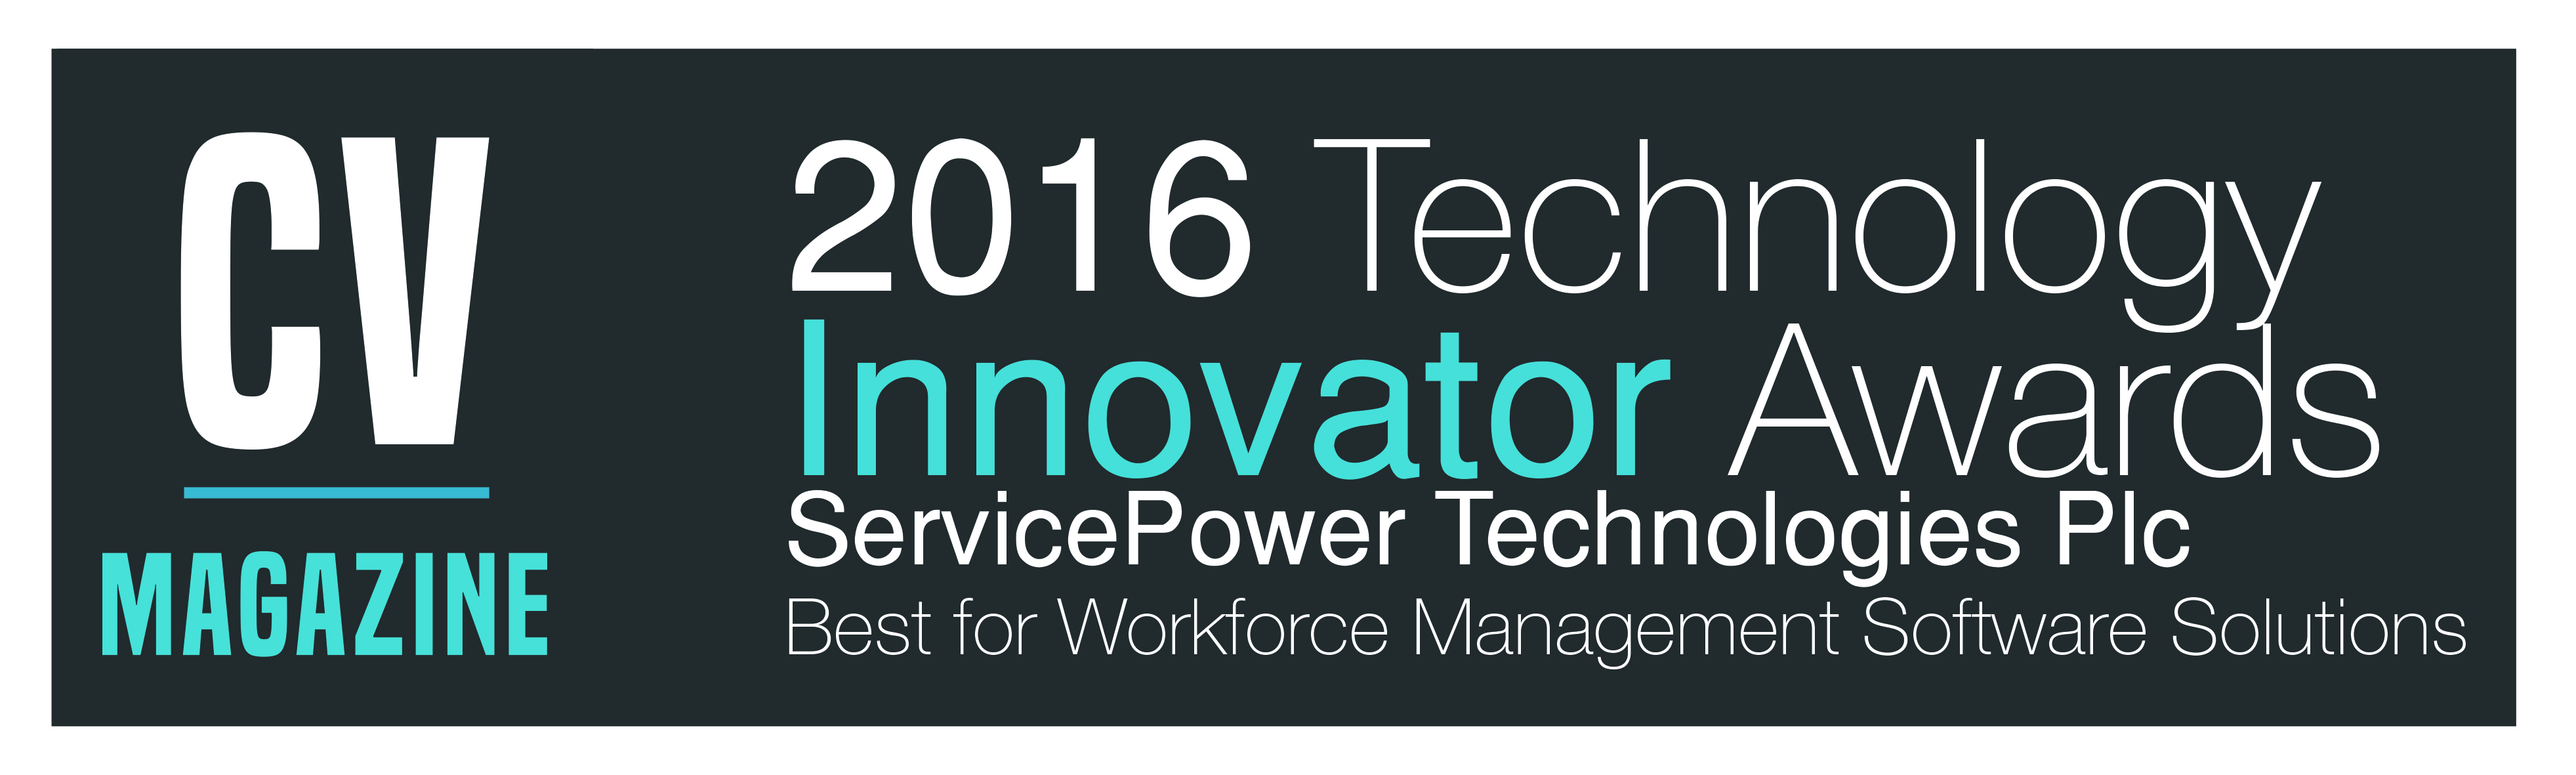 Corporate Vision 2016 Technology Innovator Awards Winner | ServicePower | Innovating Field Service